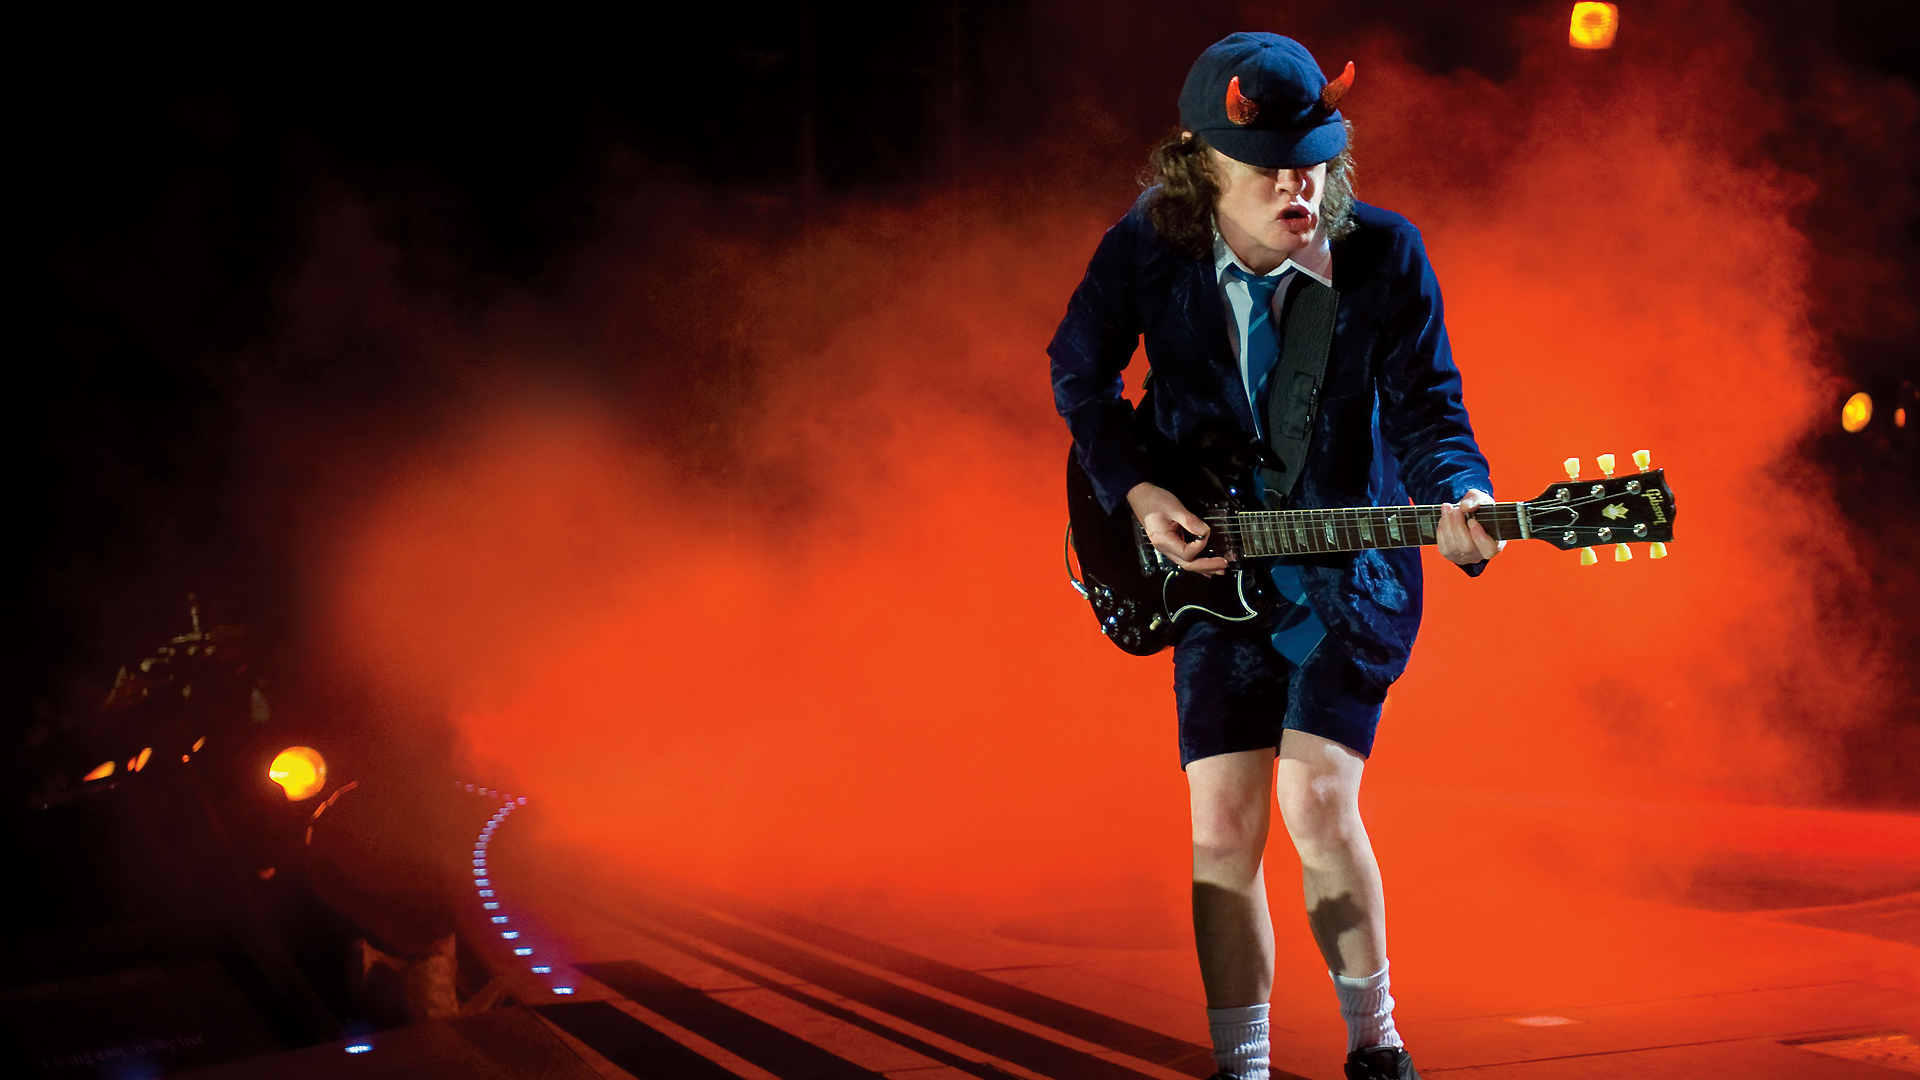 Acdc Live River Plate Rumors